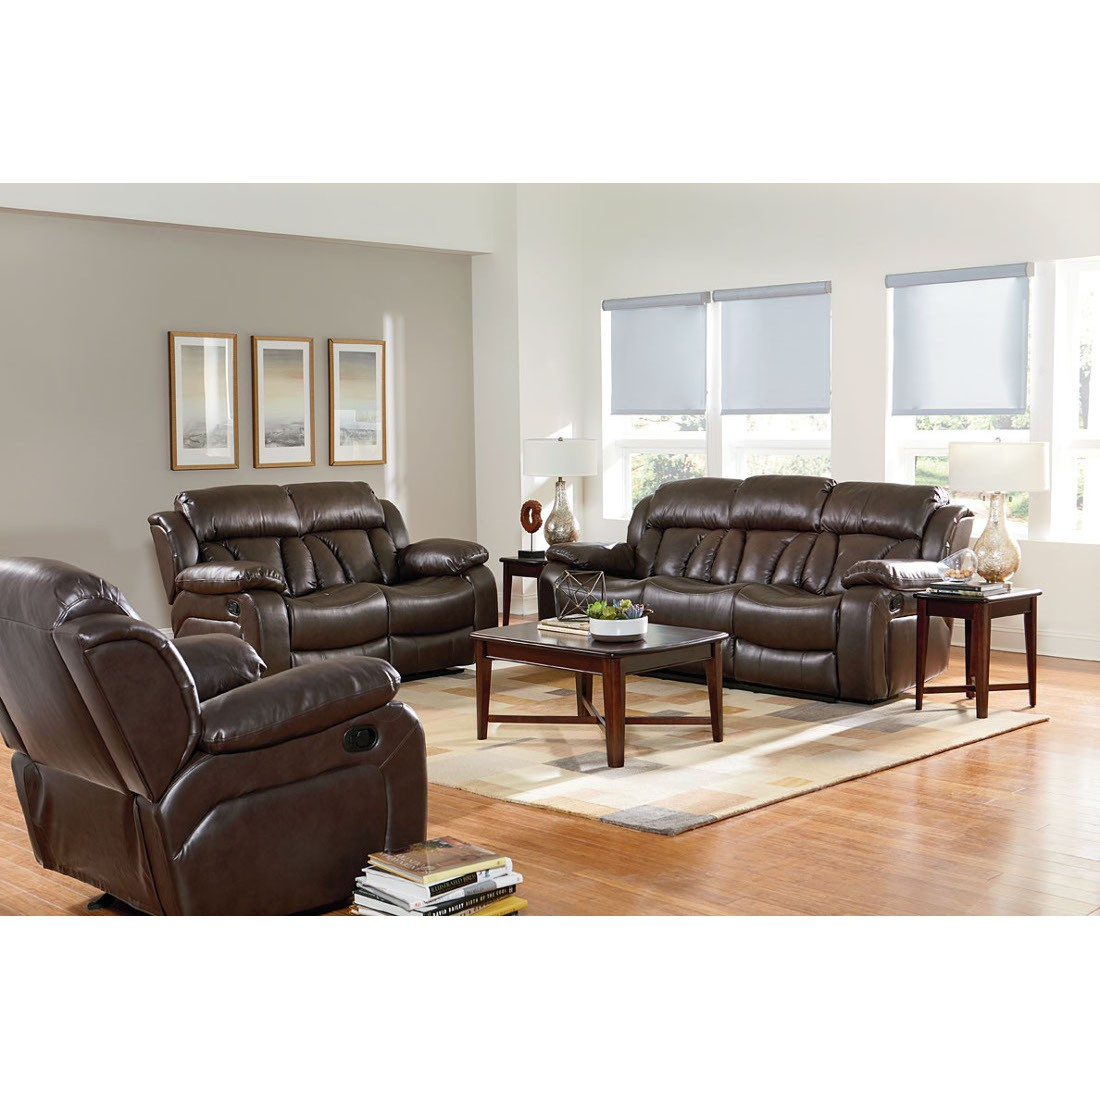 Standard Furniture North Shore Reclining Sofa Set In Chocolate within North Shore Leather Living Room Set